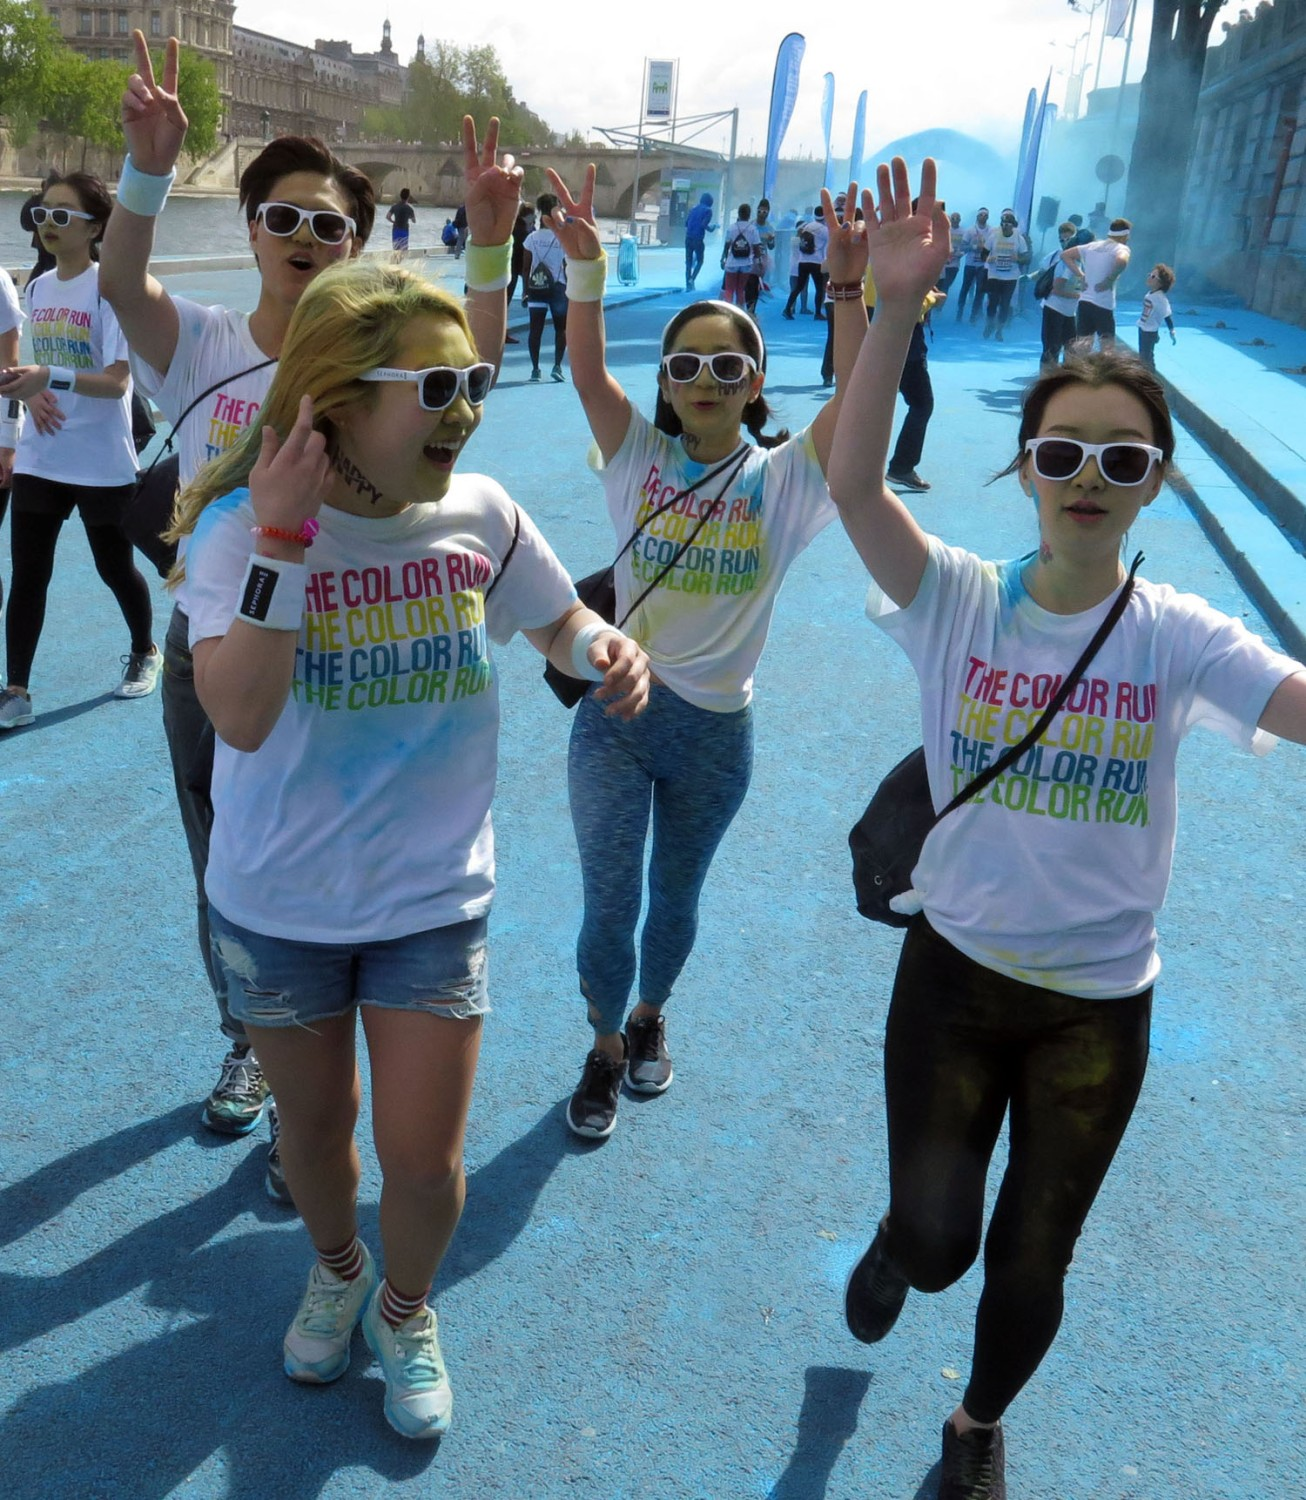 France-Paris-The-Color-Run